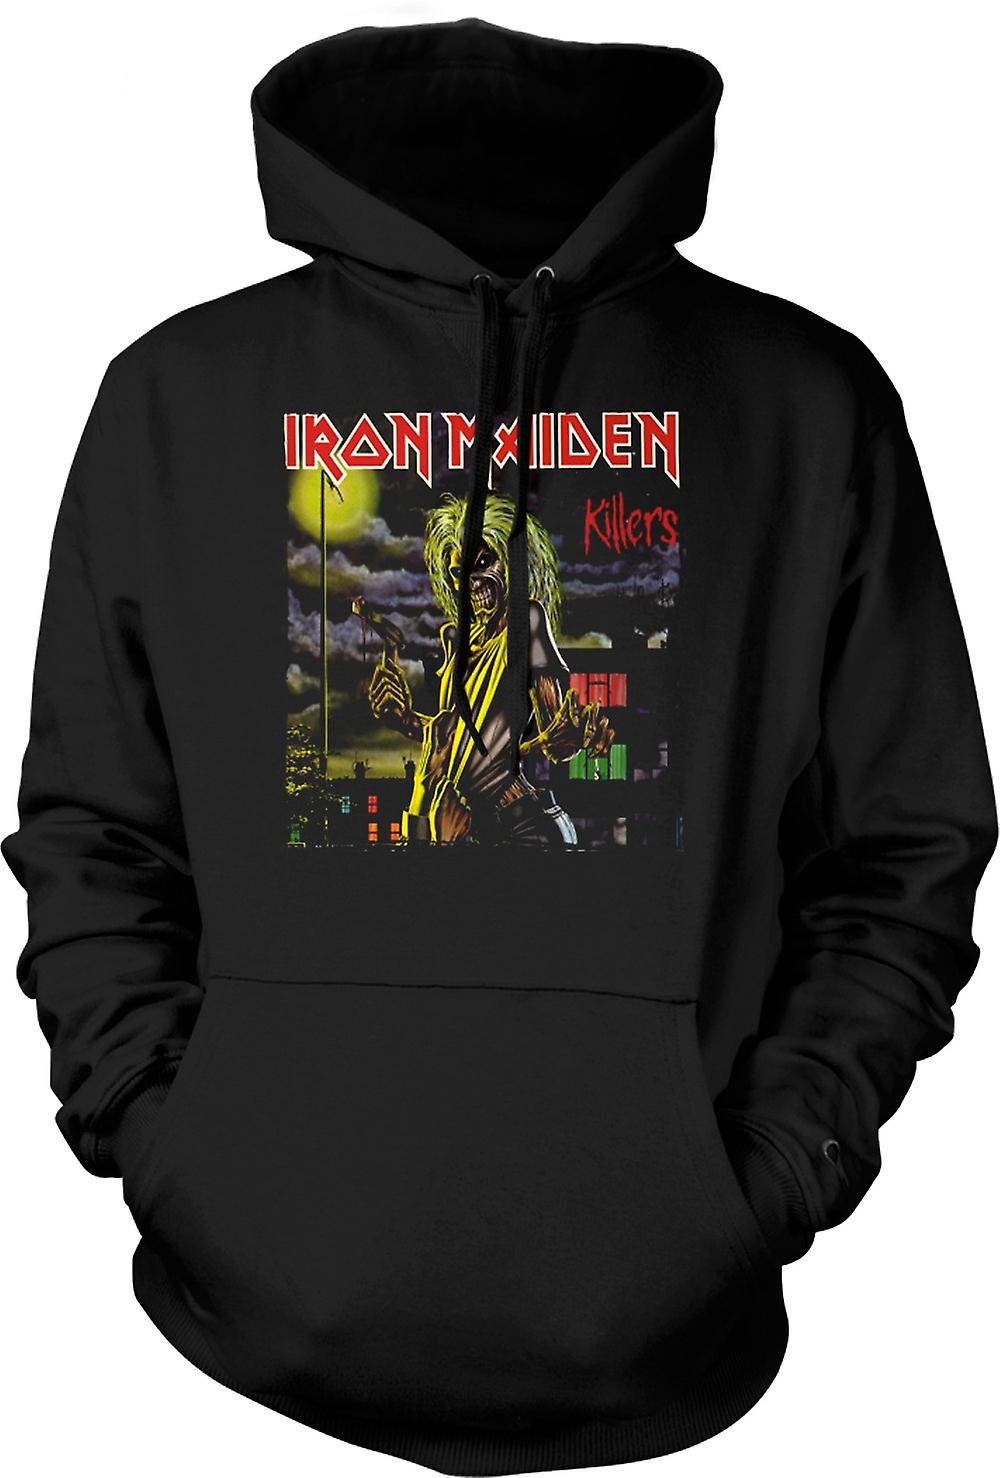 Kids Hoodie - Iron Maiden - Killers Album Art